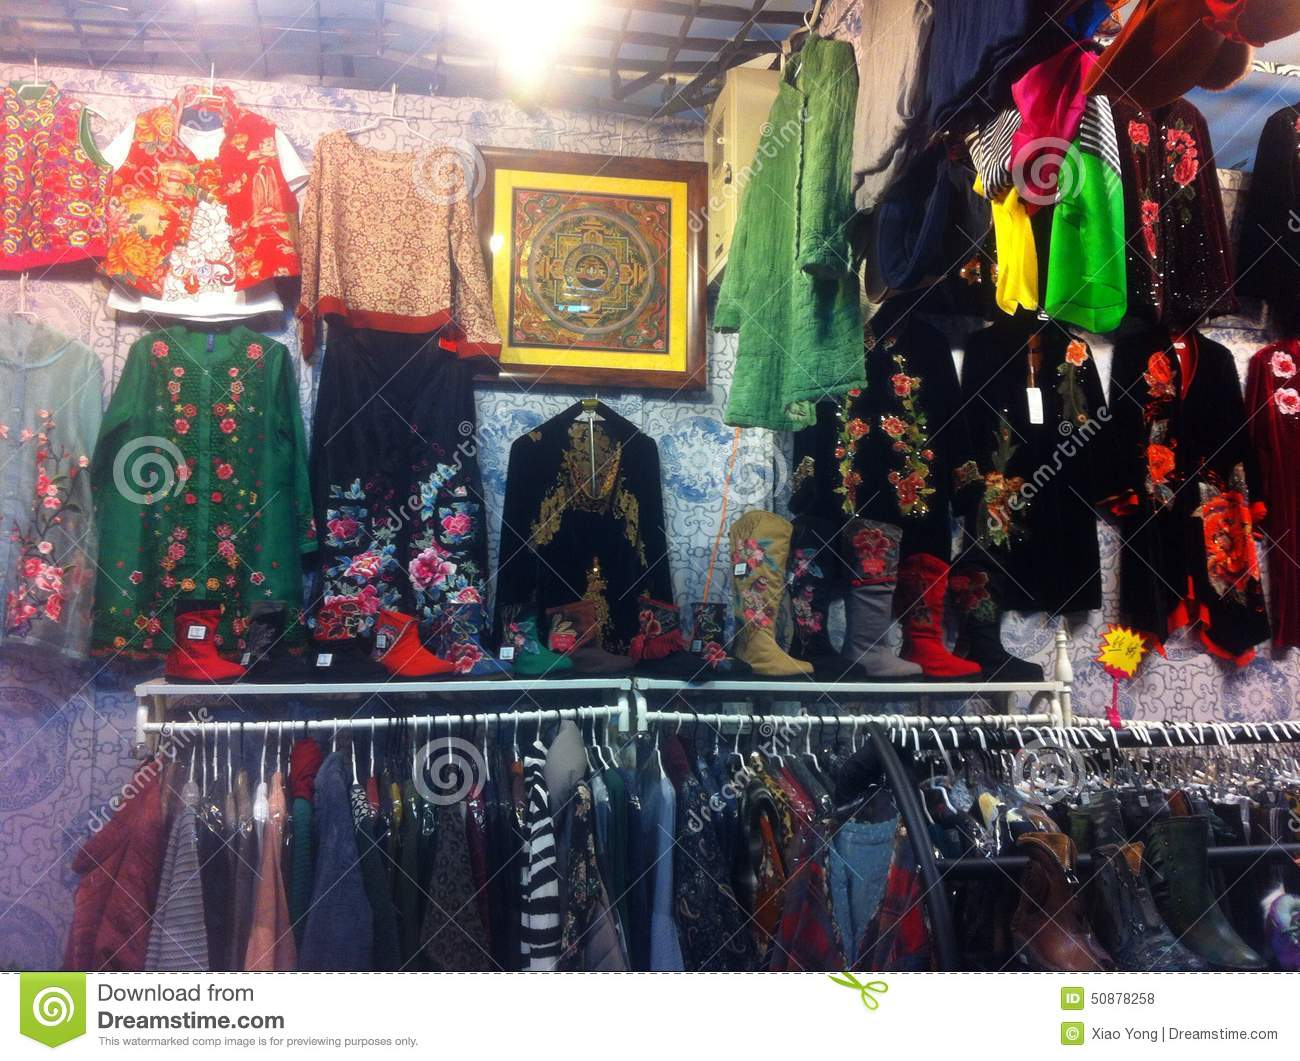 Chinese clothing stores Clothes stores